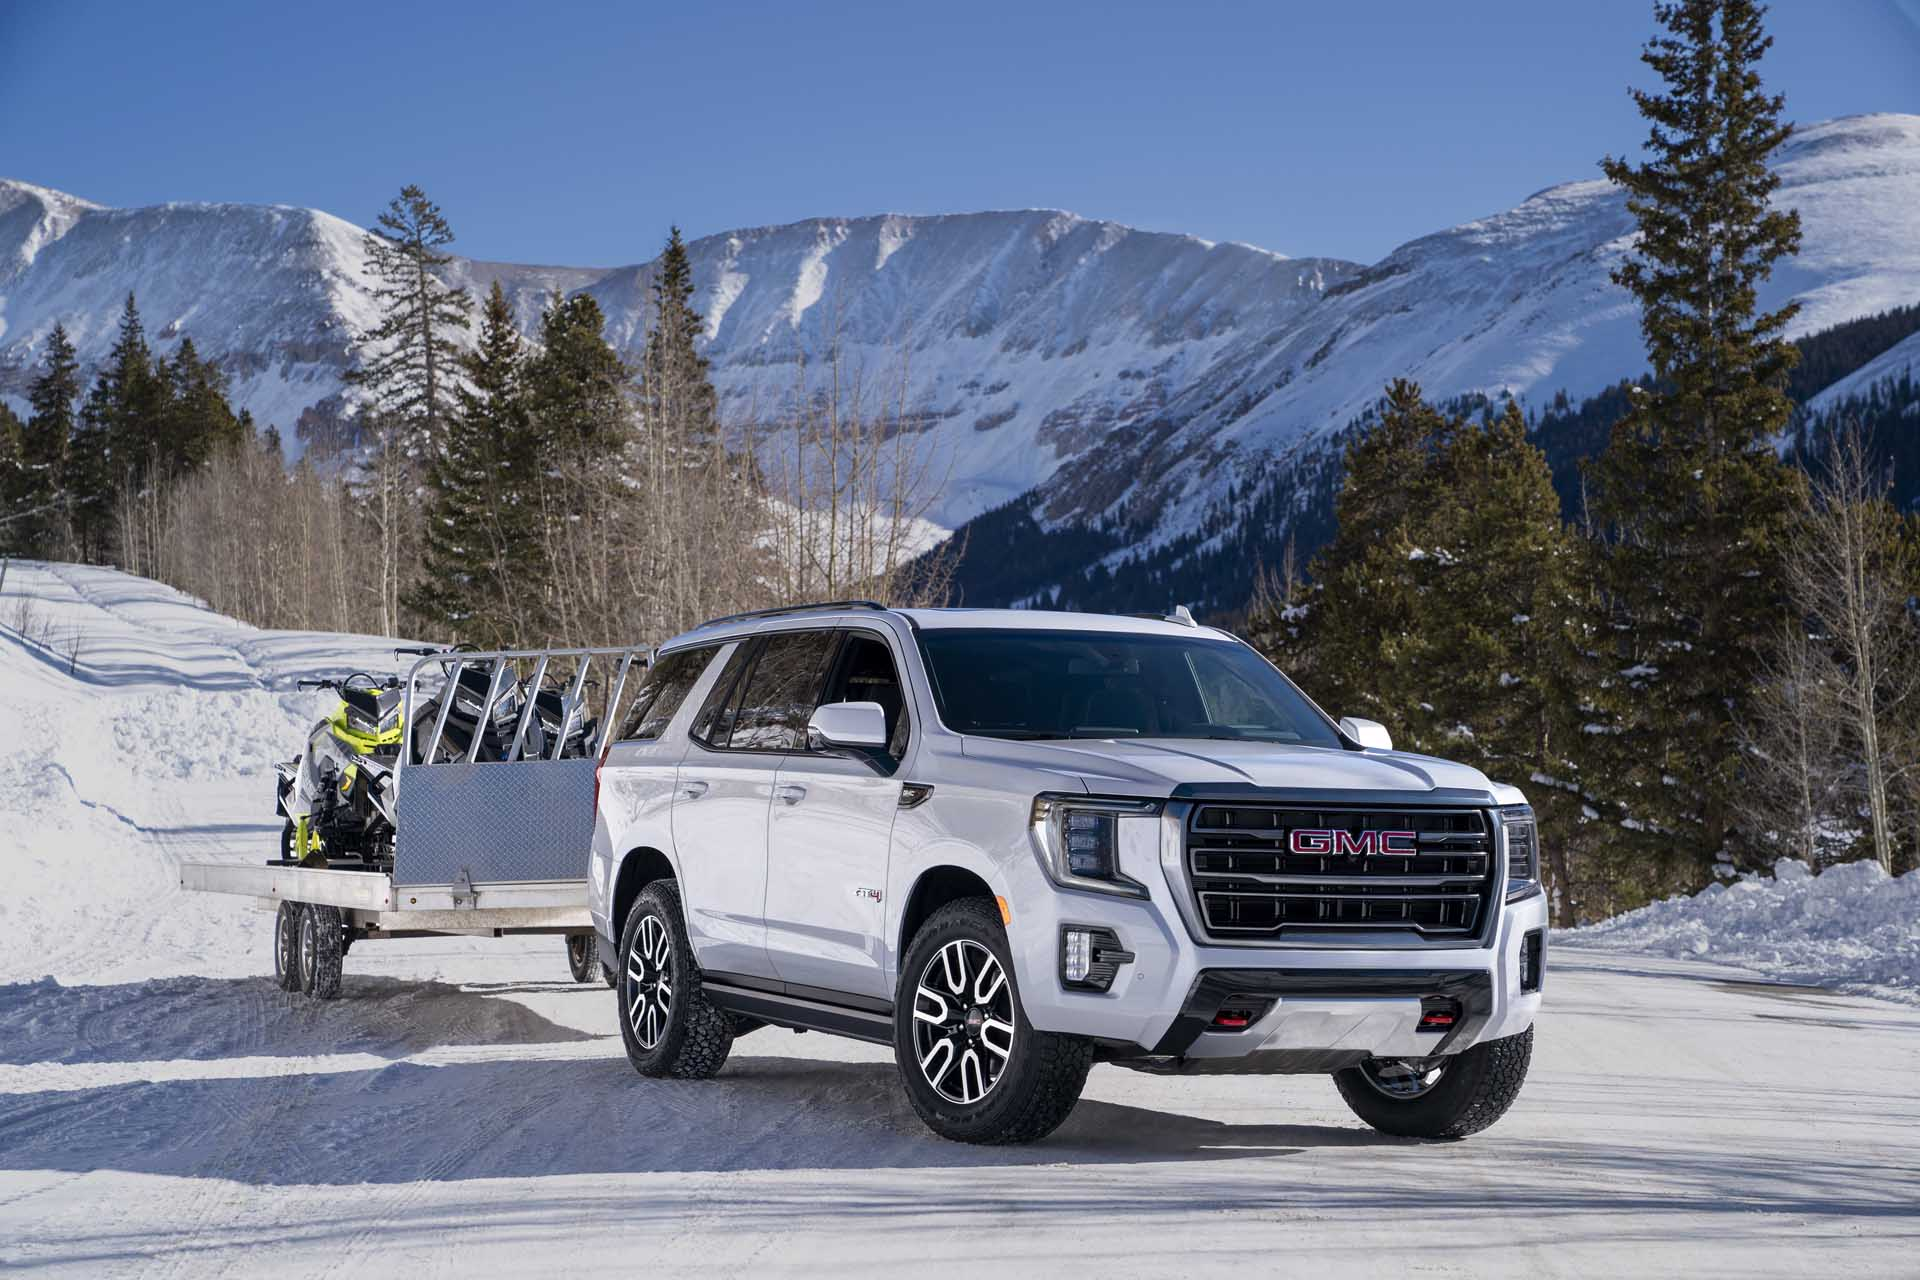 2021 Gmc Yukon Gets Big Boost In Towing Small Bump In Fuel Economy